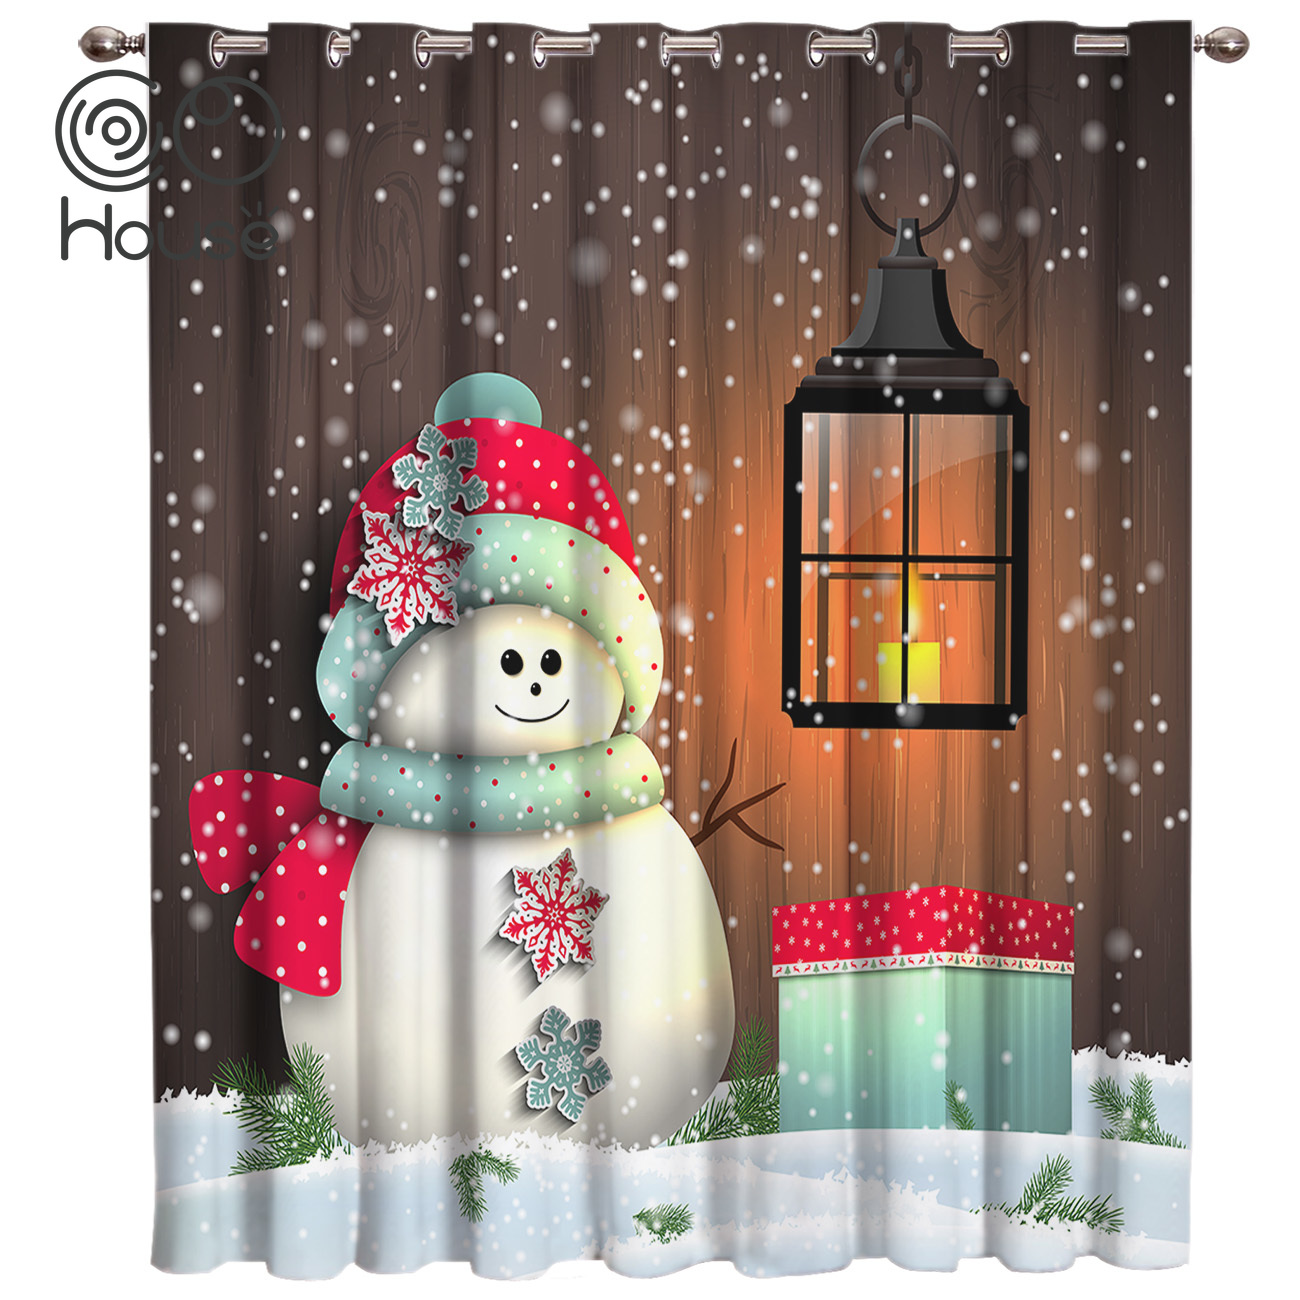 COCOHouse Christmas Snowman Window Treatments Curtains Valance Room Curtains Large Window Window Blinds Blackout Kitchen Floral